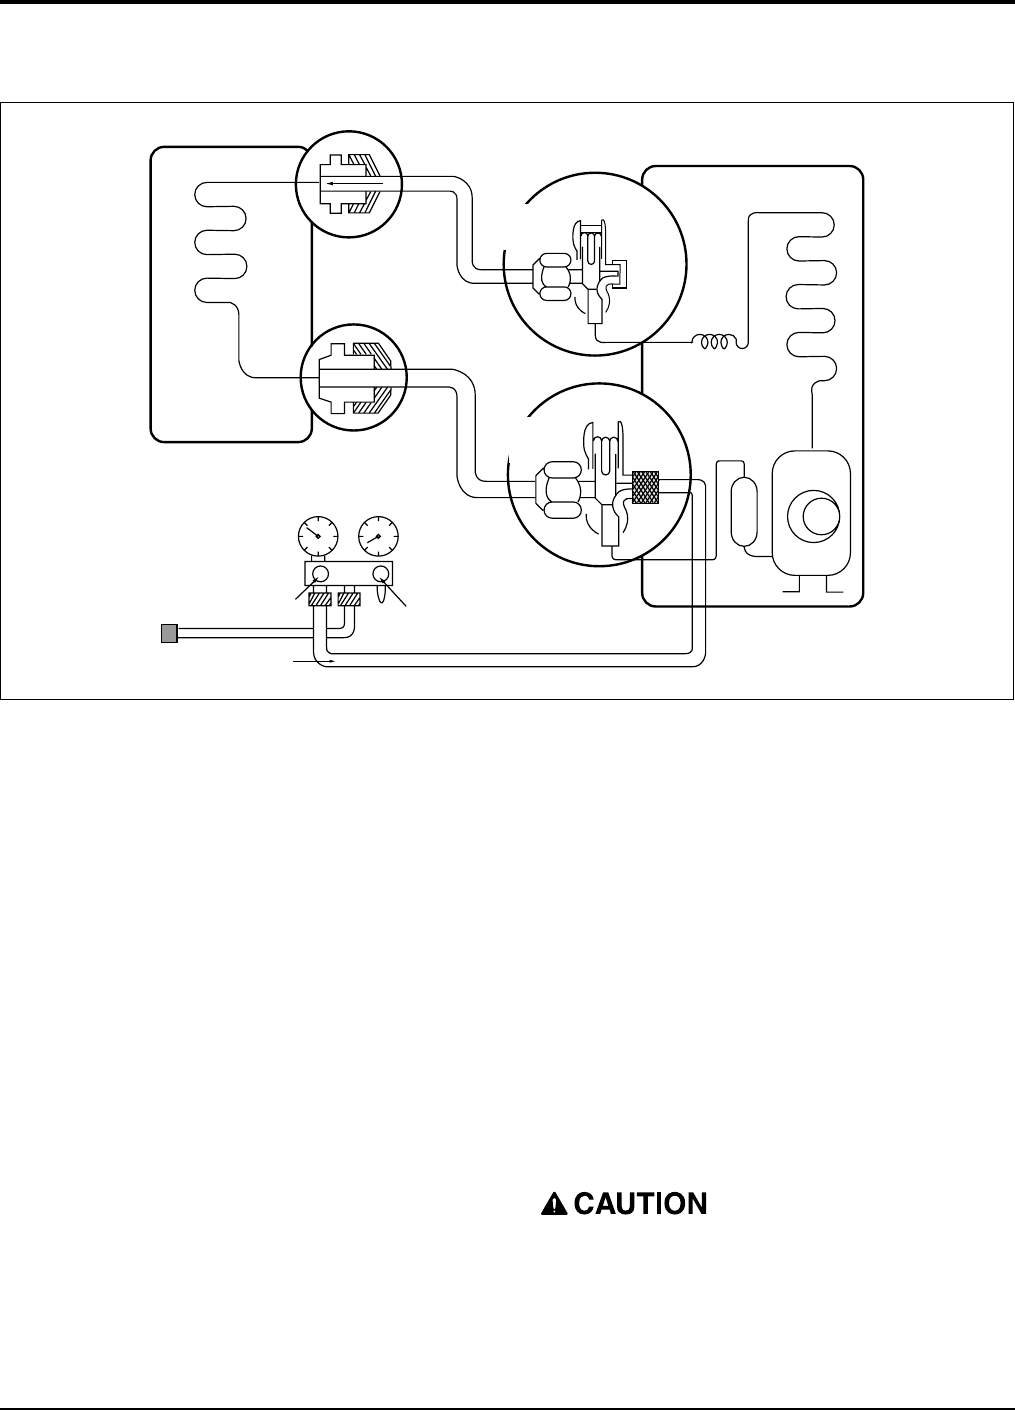 Page 45 of Heat Controller Air Conditioner DMC12SB-0 User